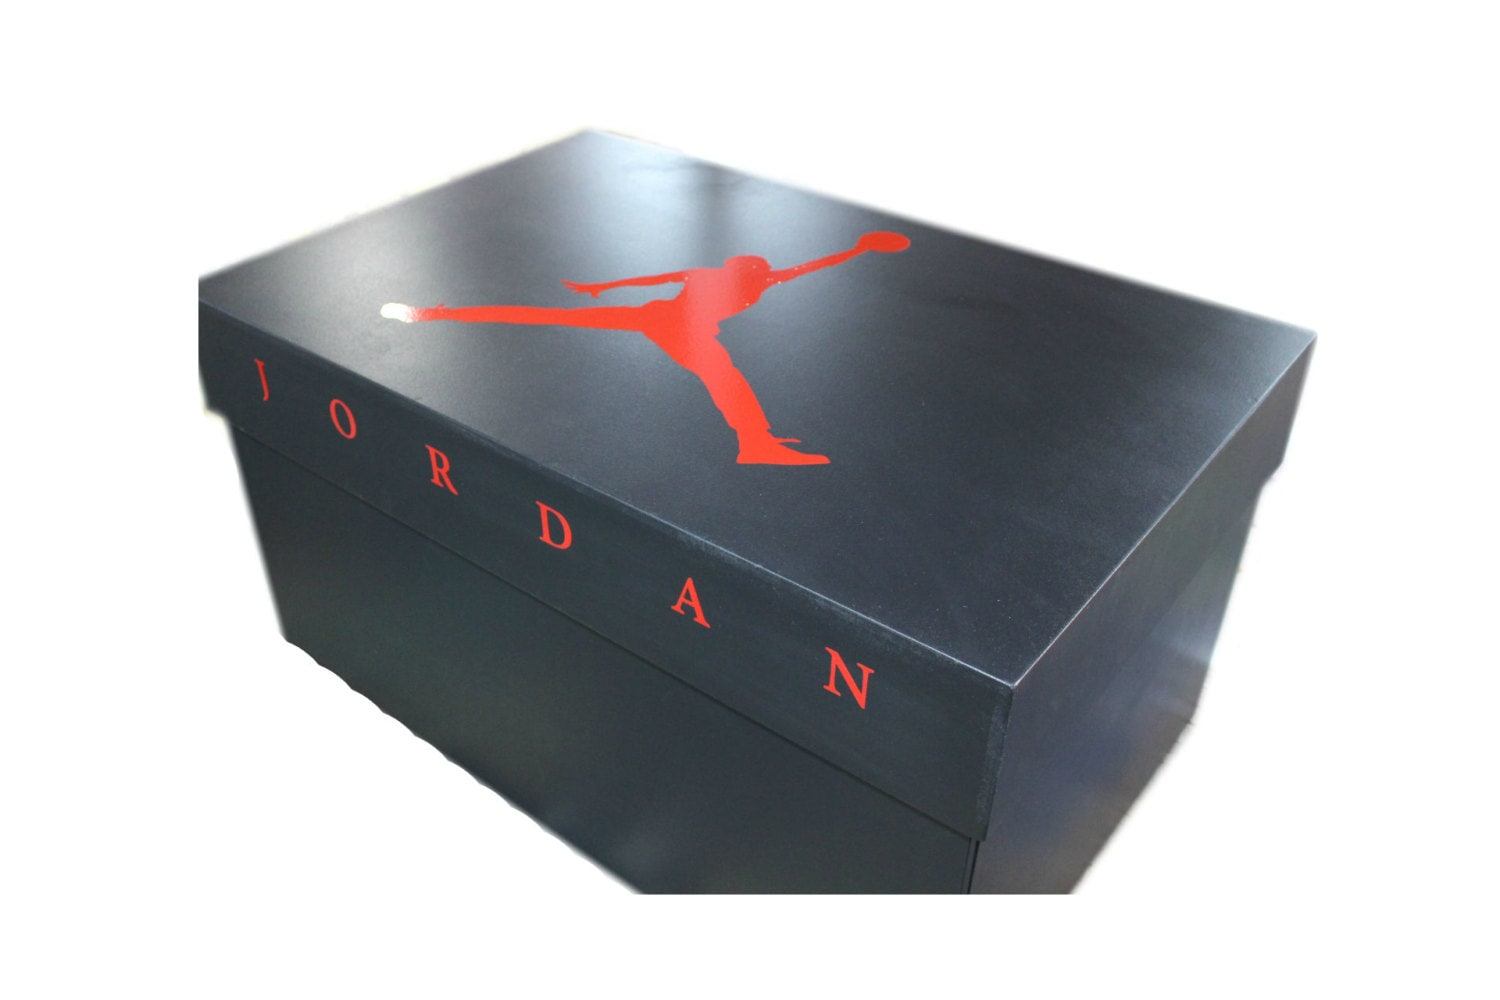 Vinyl Shoe Label Adidas Jordan Build Giant For Air Or Box And Decals Nike eYDH92WEI